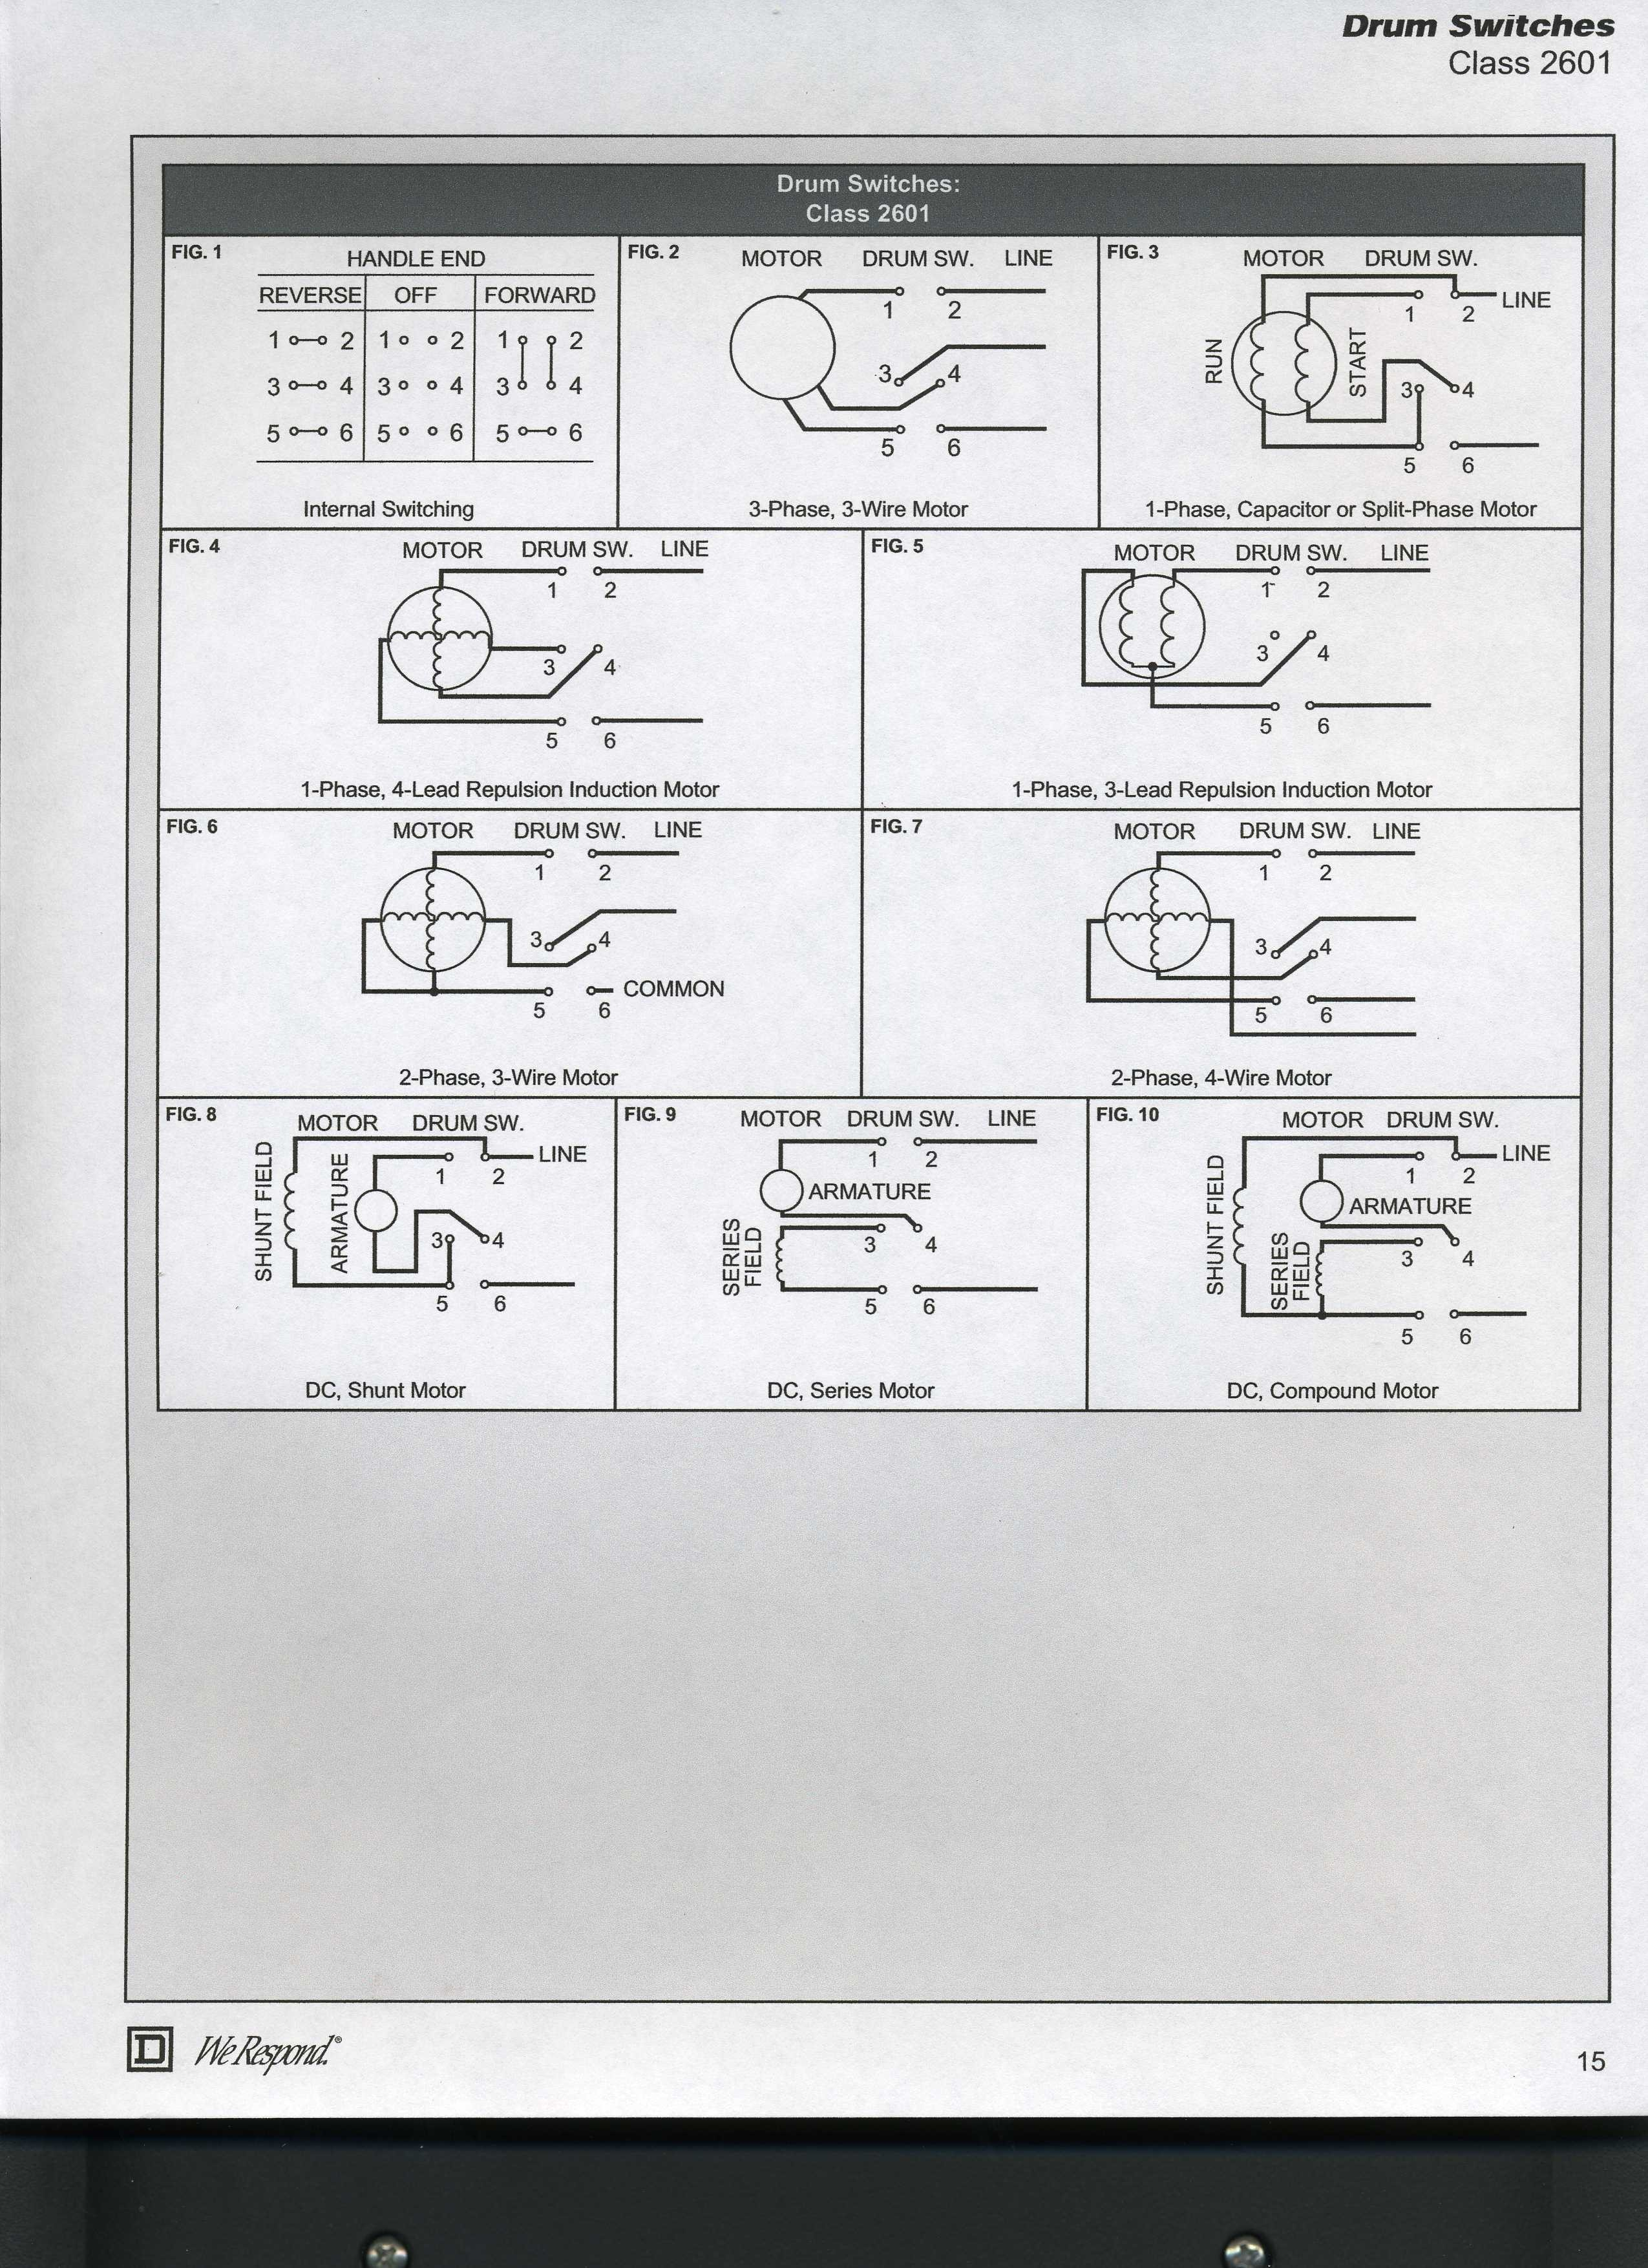 Wiring Diagram Electric Motor Reverse Save The Wiring Diagram For Reversing A 110 V Electric Motor With A Six